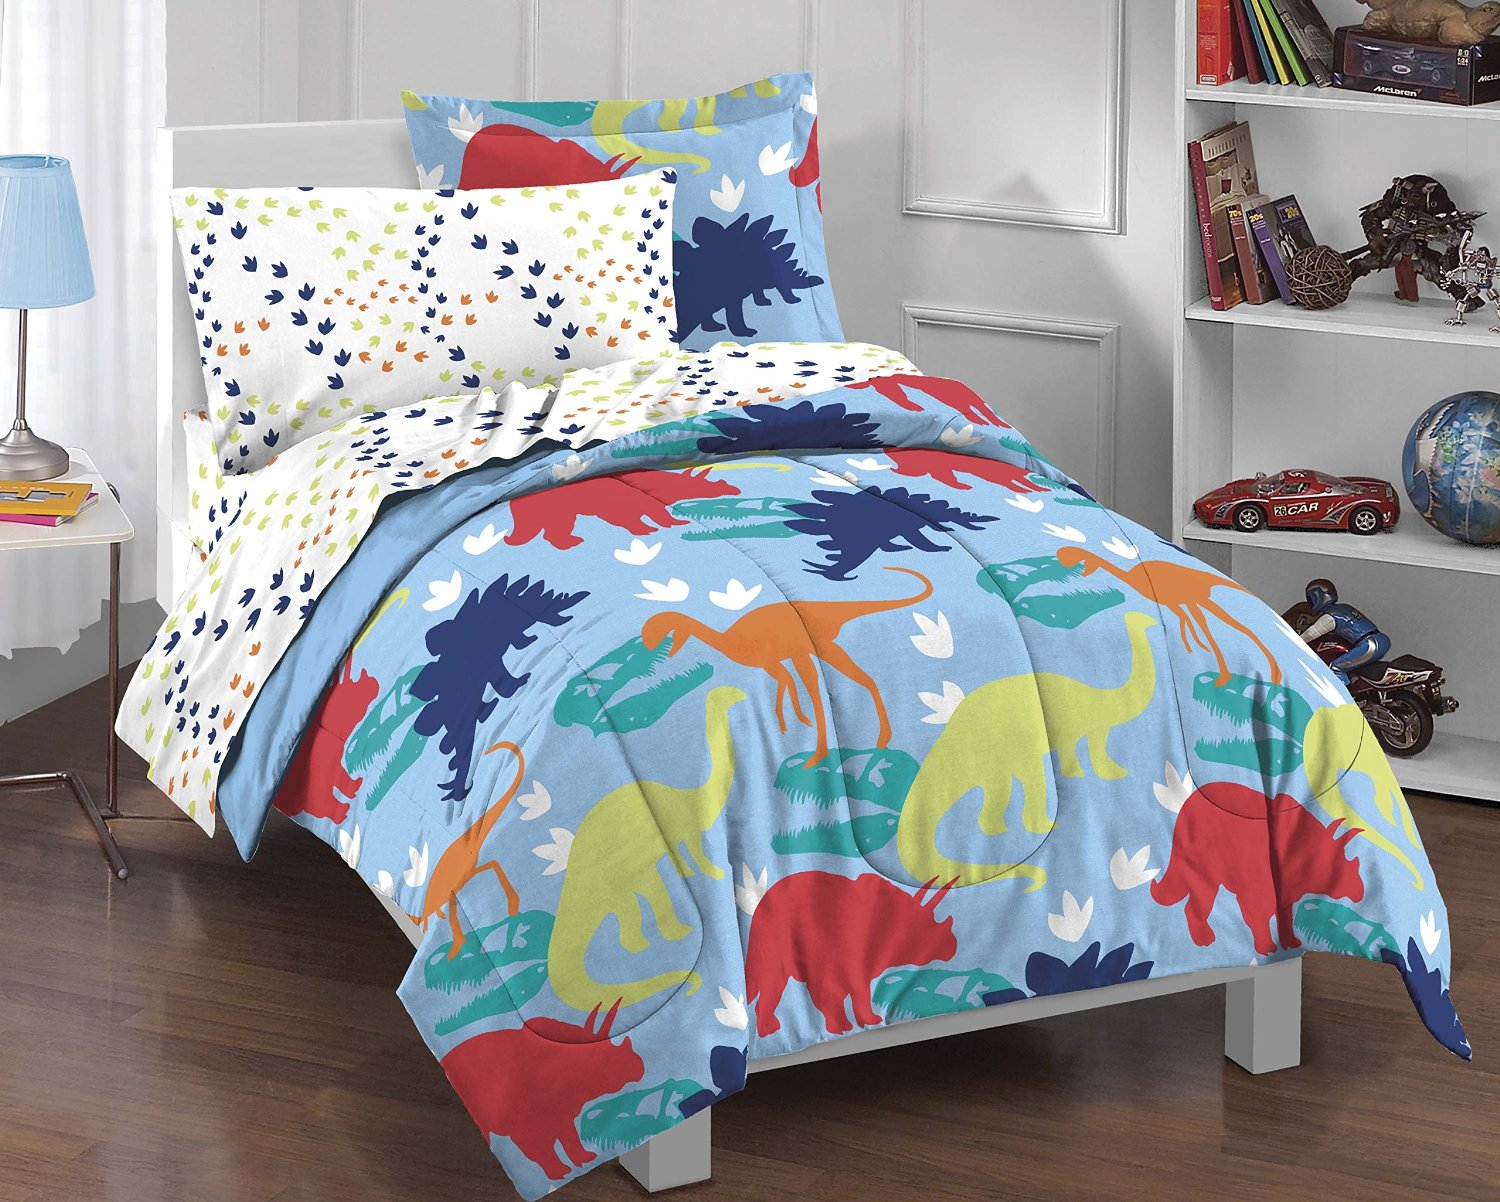 comforter mattress a great there out and market bedding excellent most systems the bed collection comfortable present in for is absolute among beautiful fantastic vital wool sleep decomagz